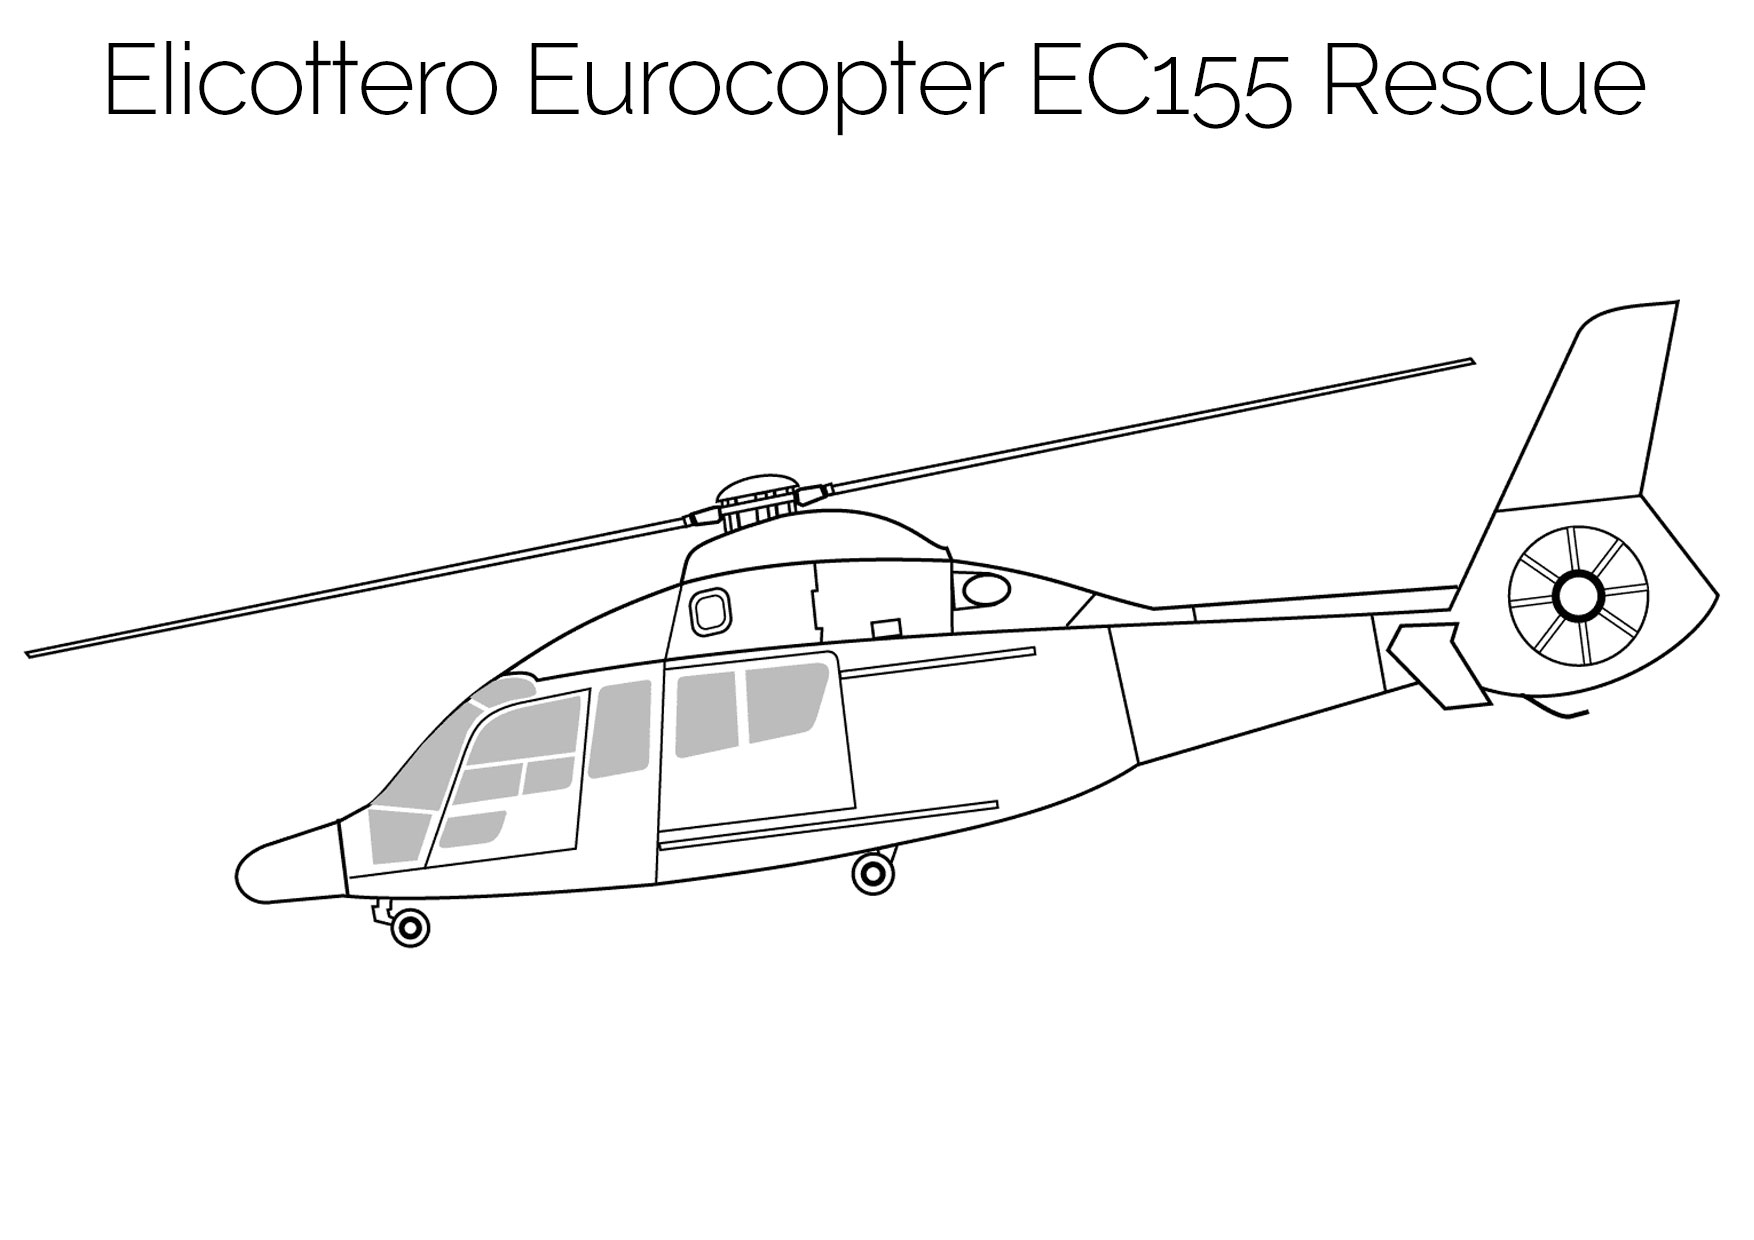 Elicottero da colorare Eurocopter EC155 Rescue